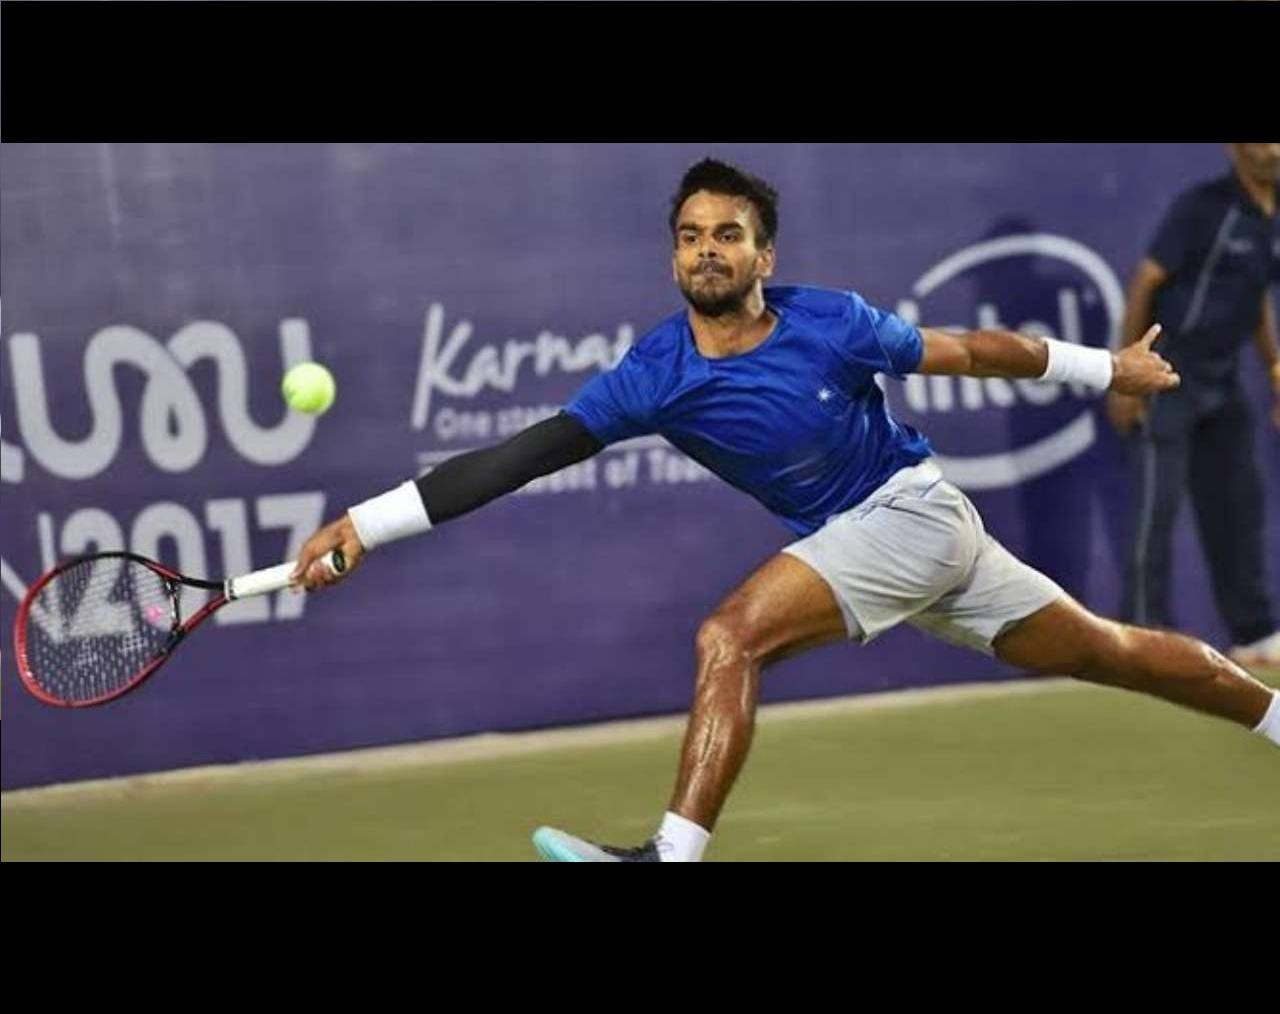 US Open 2020: Sumit Nagal becomes first Indian to win Grand Slam match in last 7 years, defeats Bradley Klahn